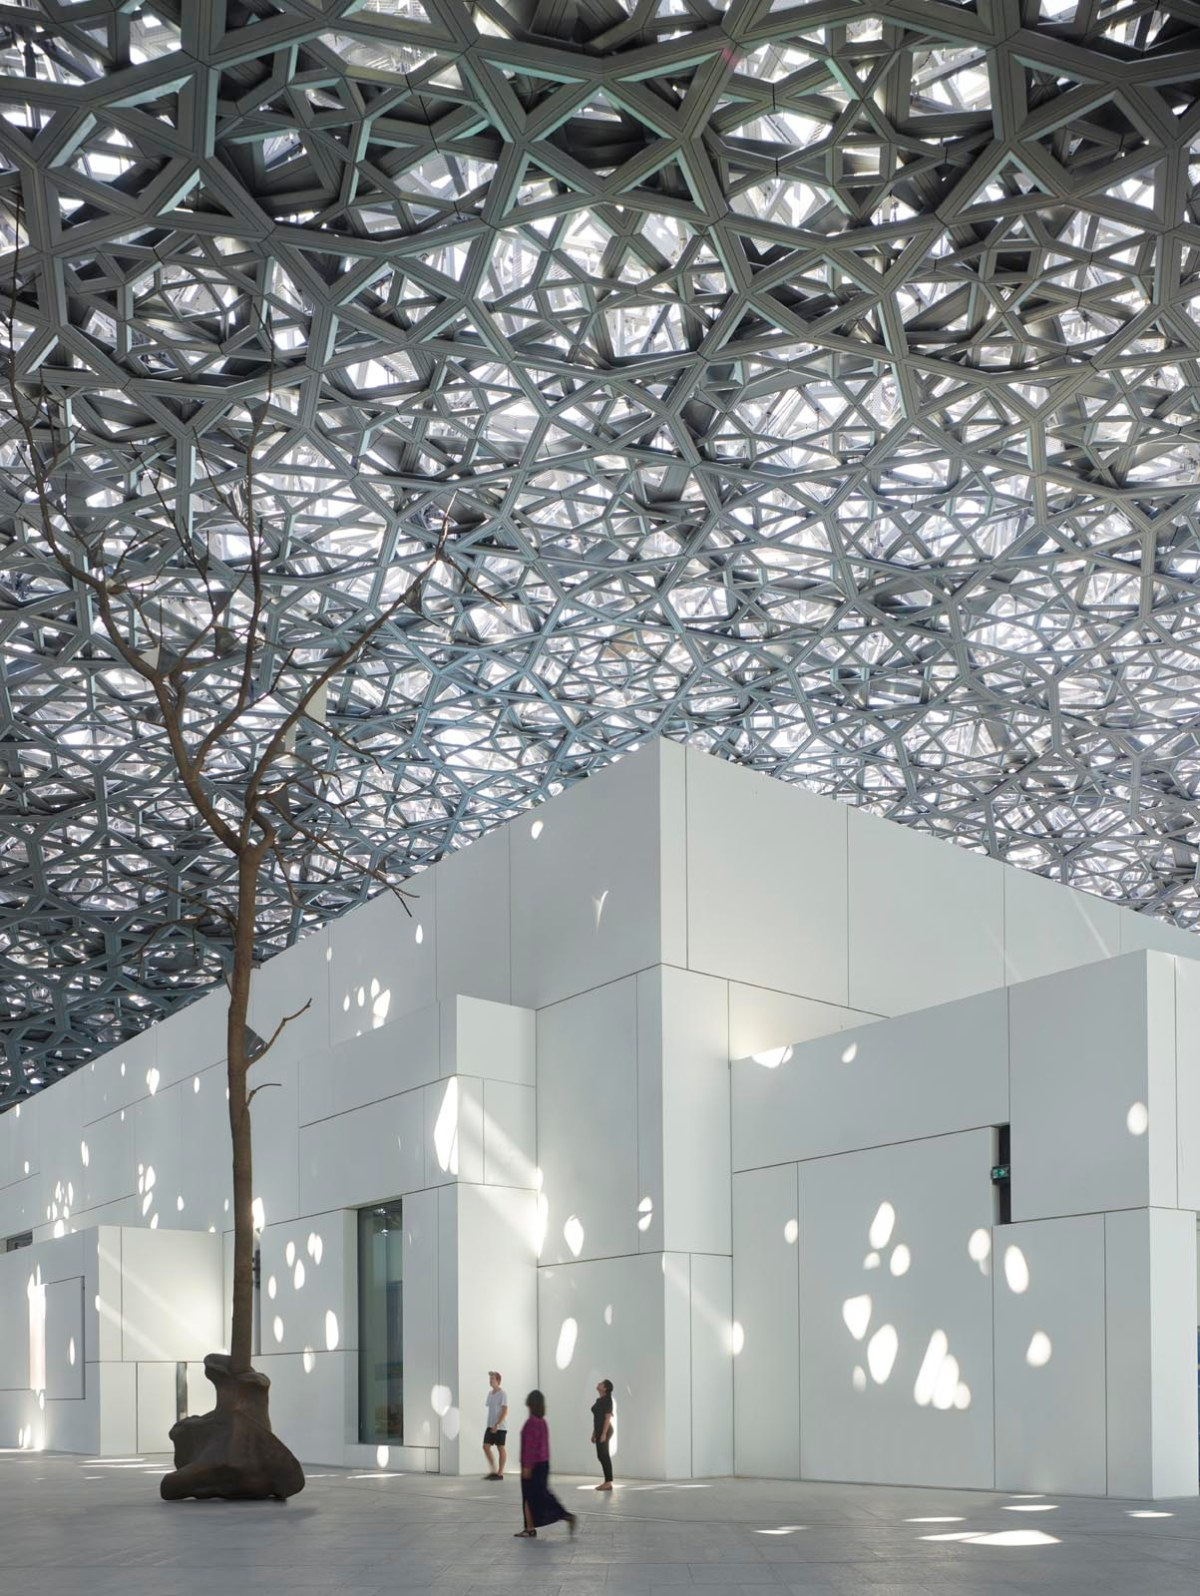 A New Light: Louvre Abu Dhabi Ushers a Global Focus on Shared Stories of Humanity